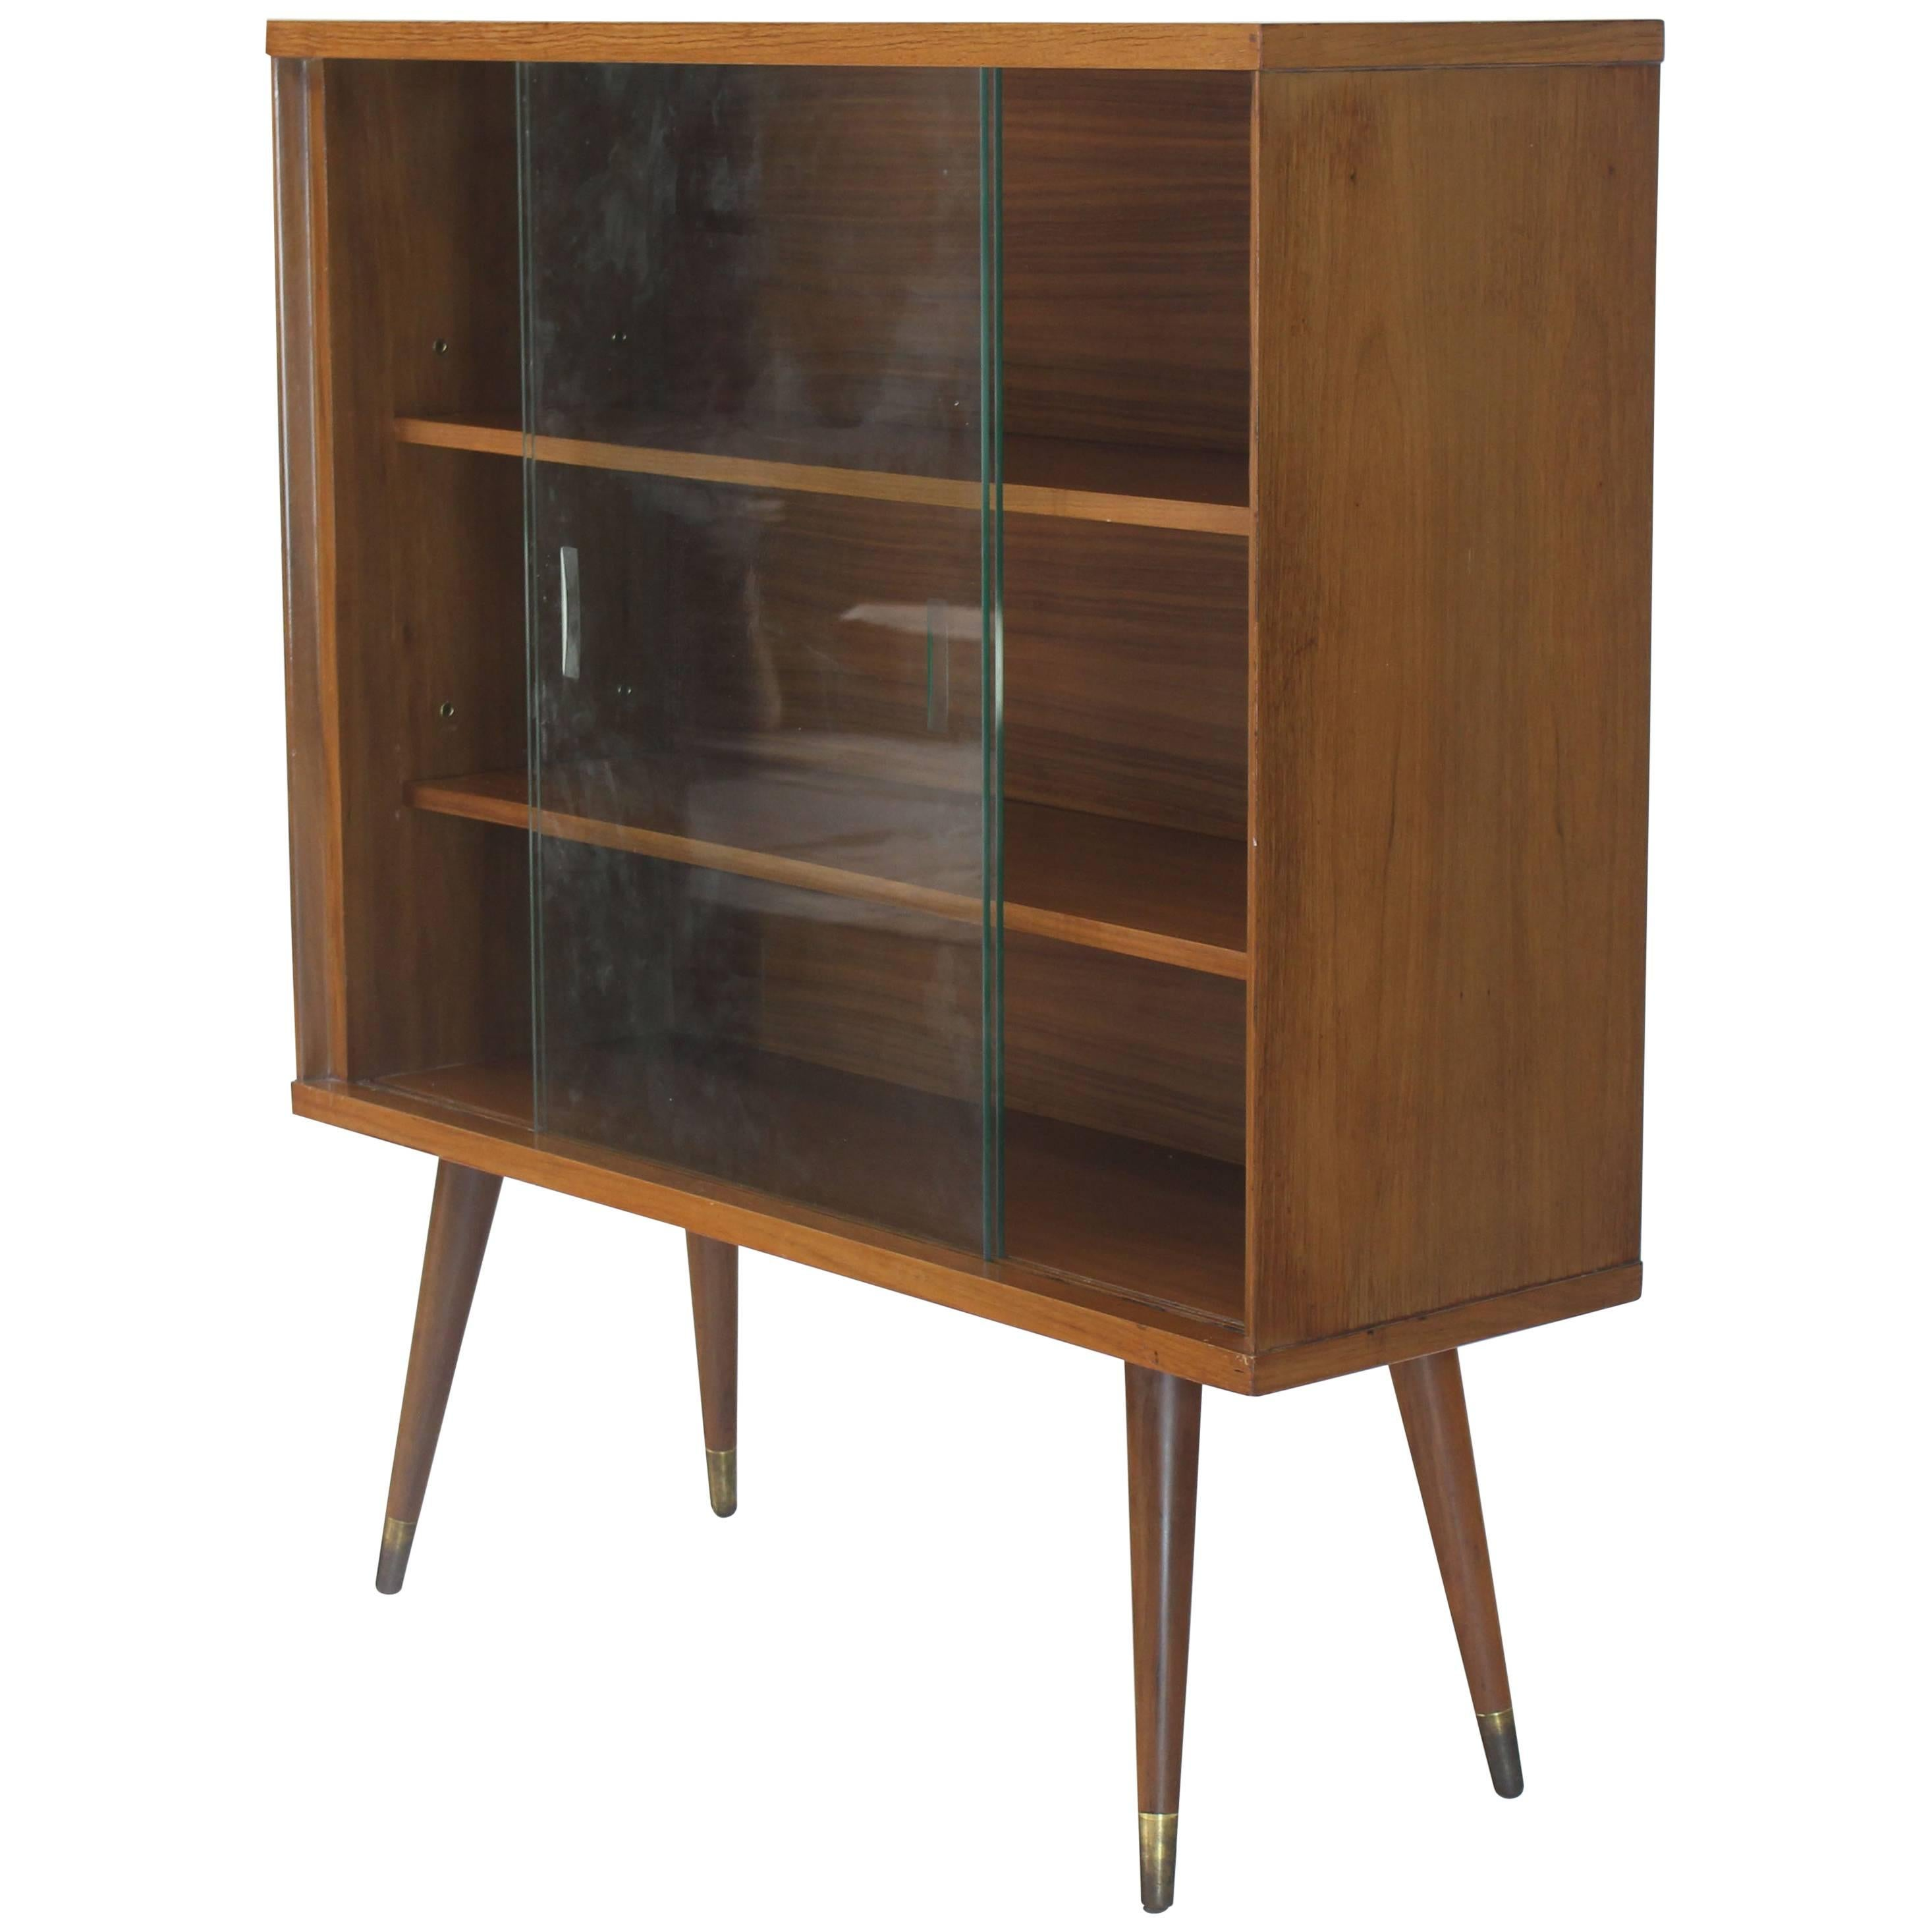 Sliding Glass Doors Mid Century Modern Bookcase Cabinet